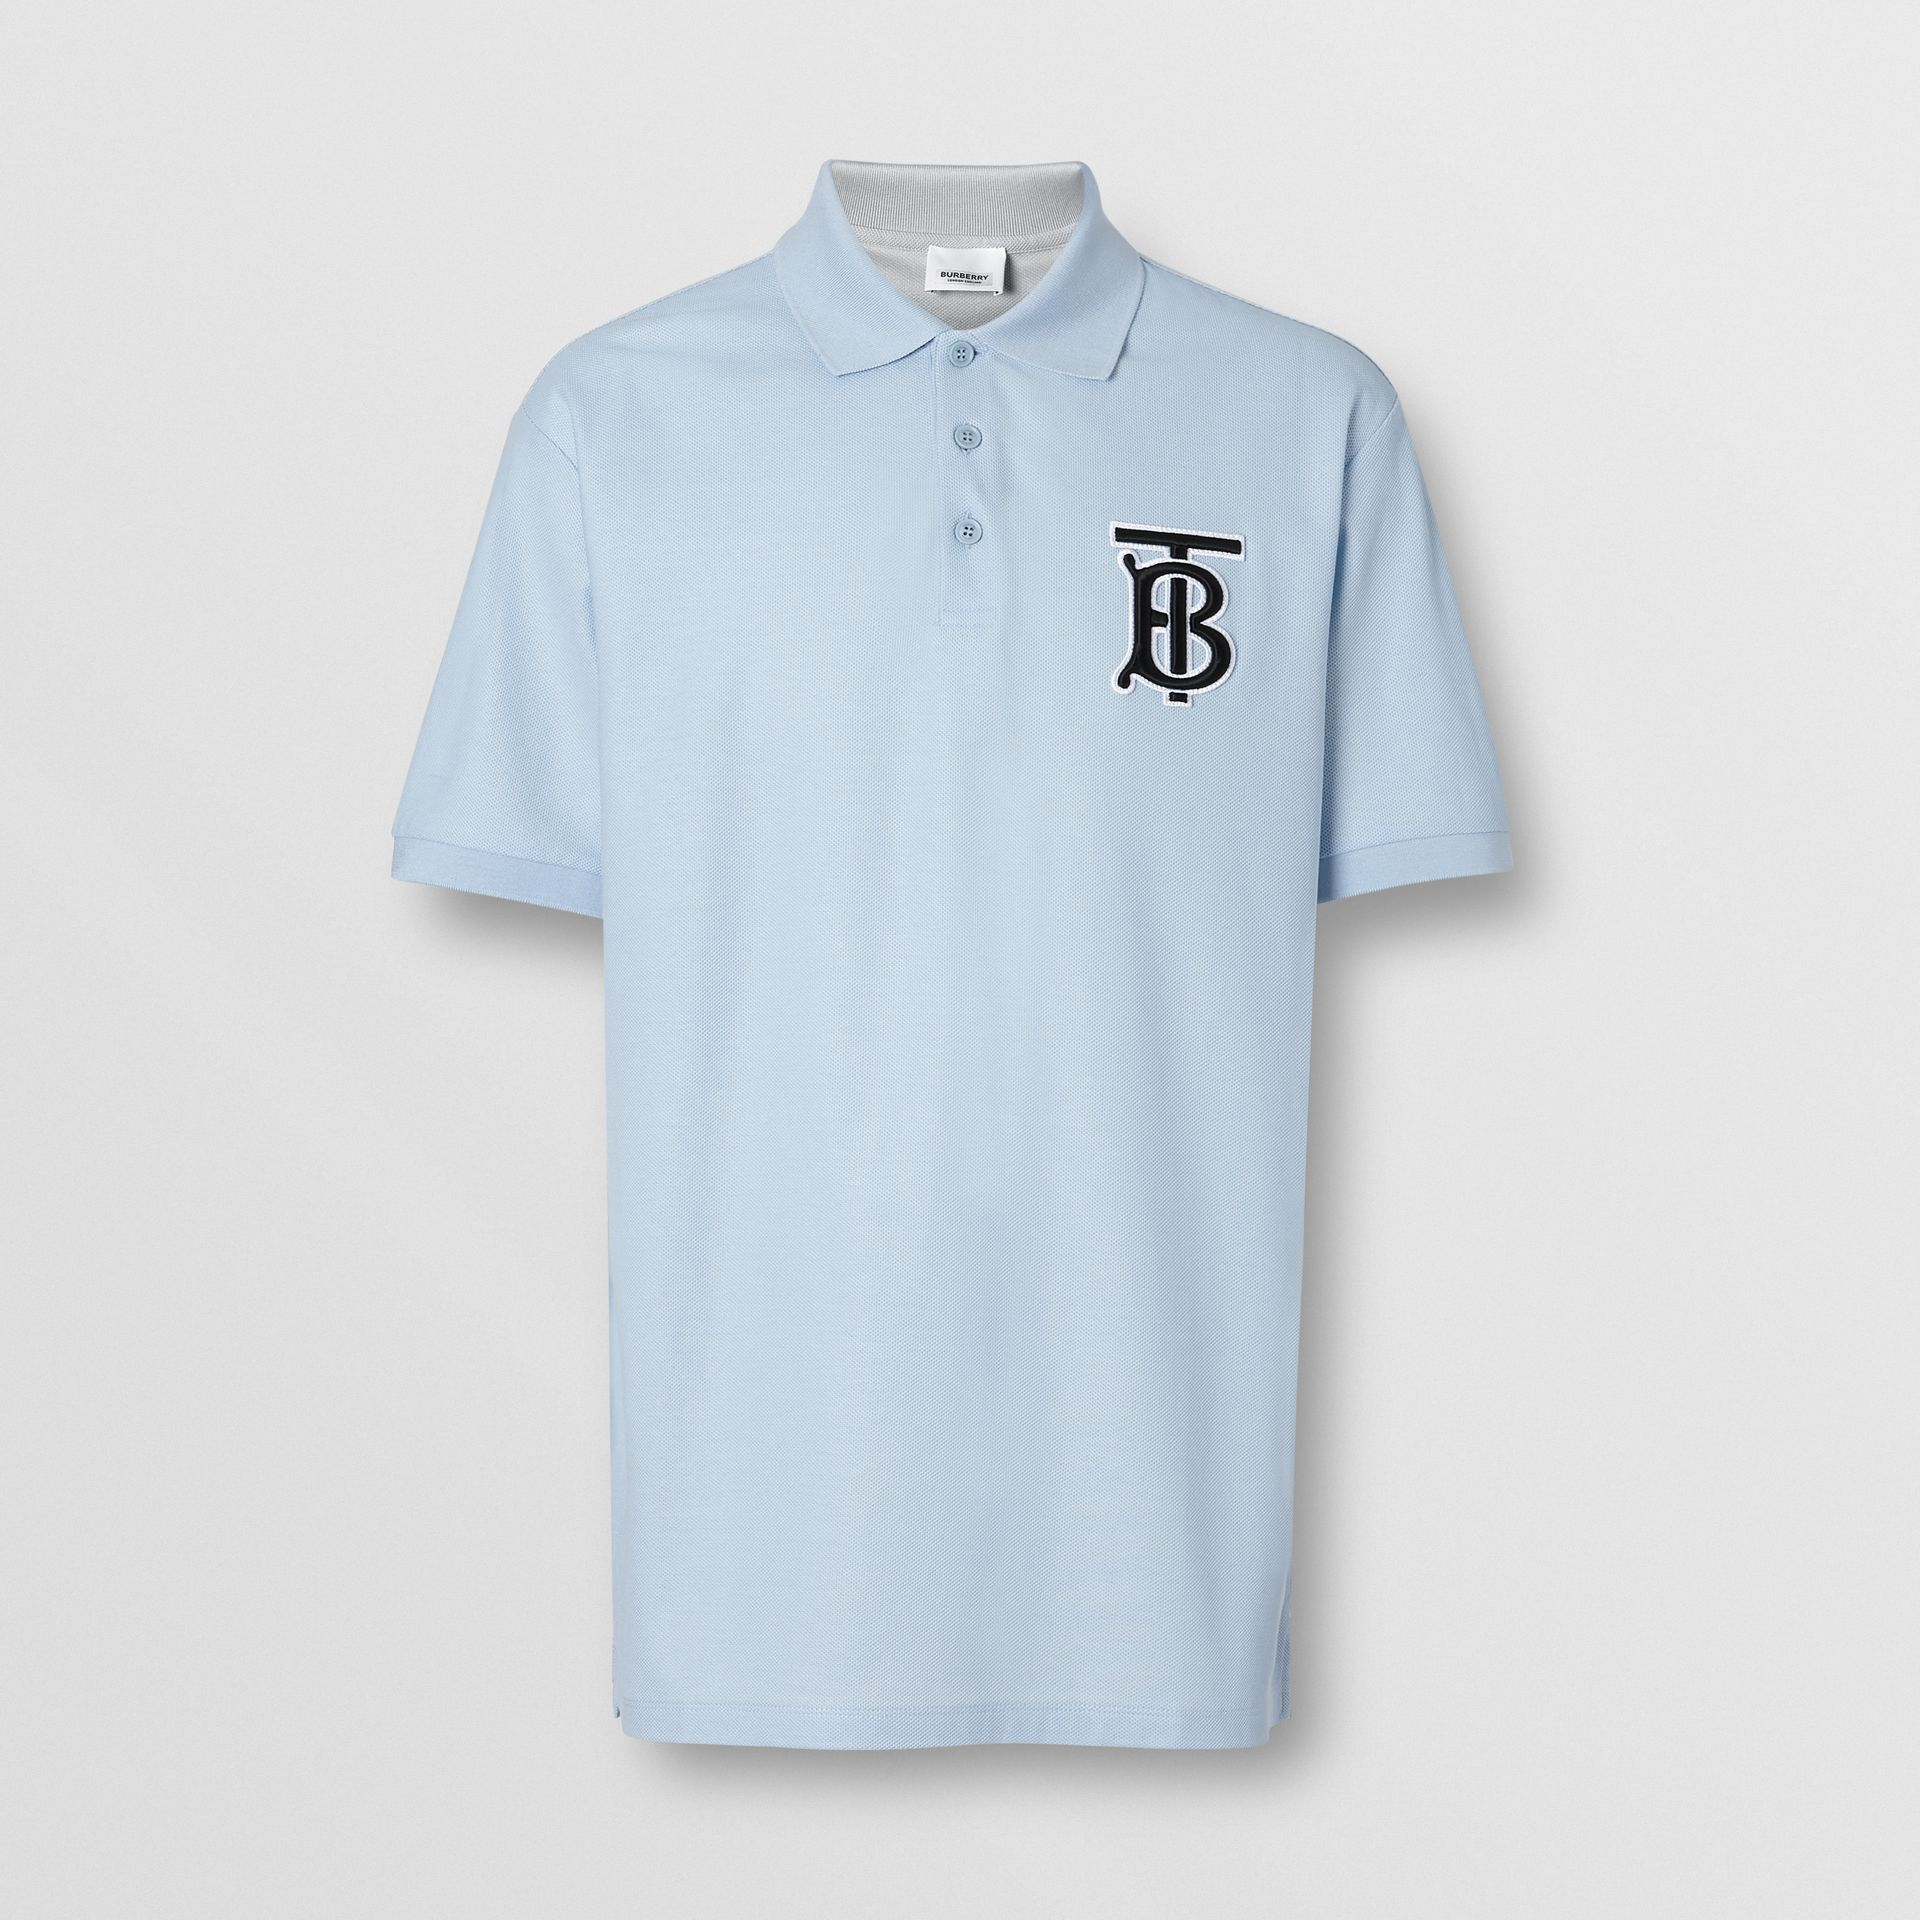 Monogram Motif Cotton Piqué Oversized Polo Shirt in Pale Blue - Men | Burberry - gallery image 3